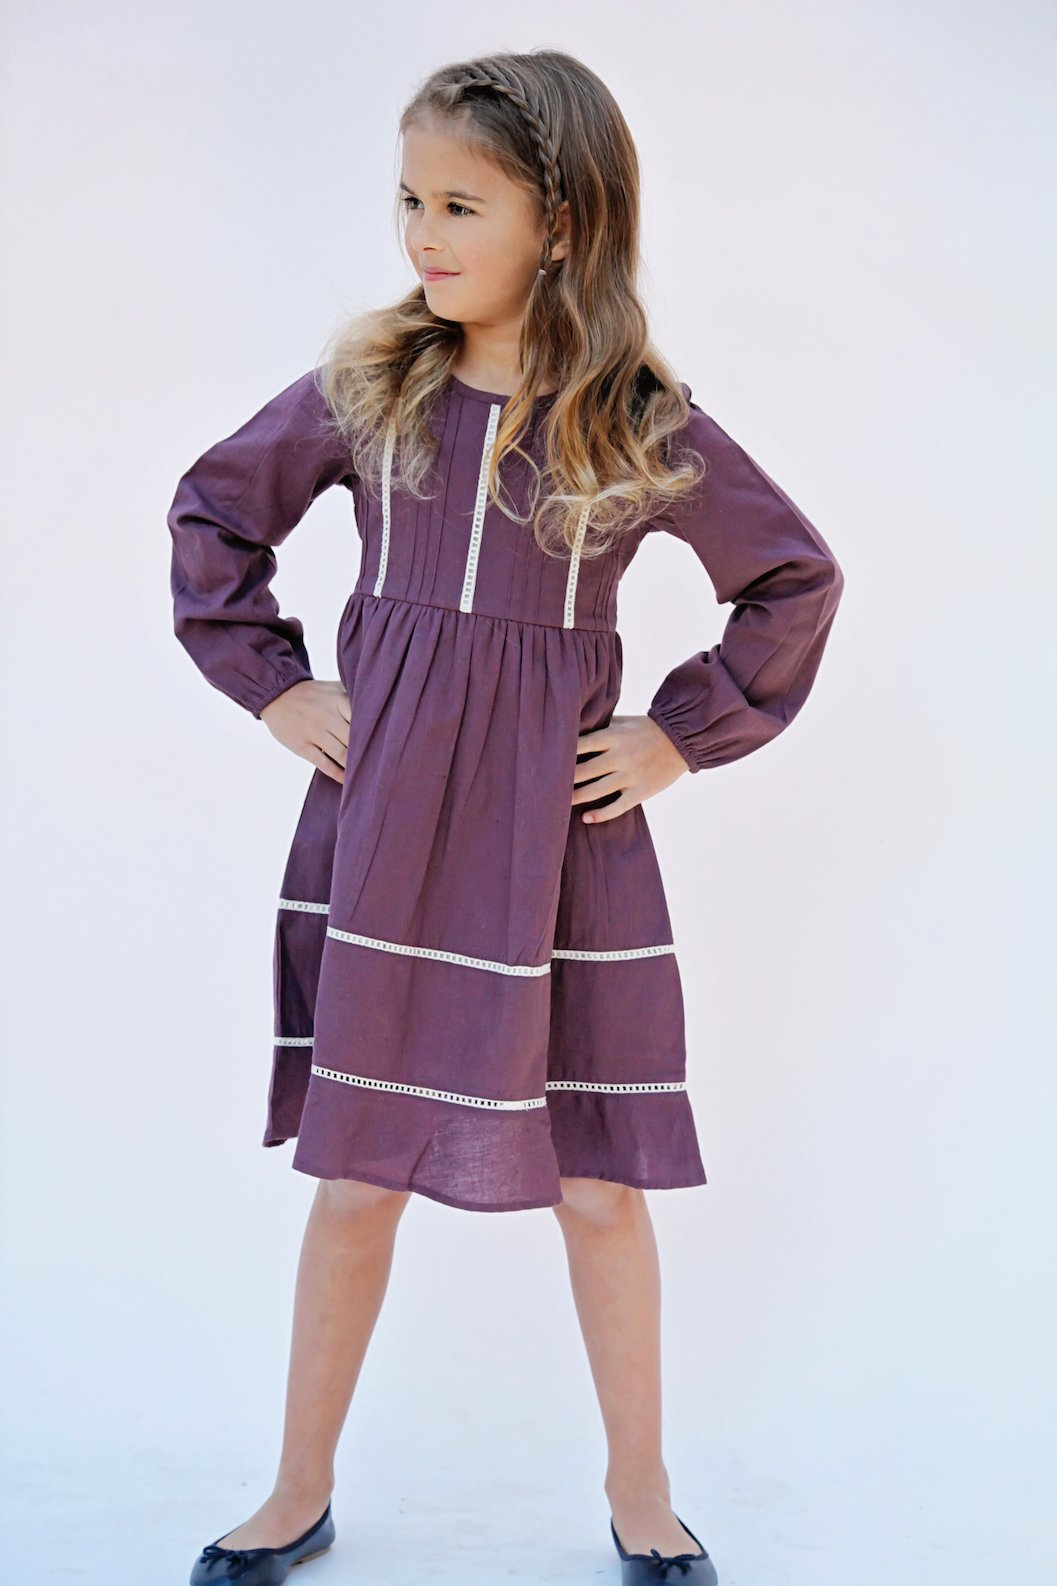 Aubergine Pin-Tuck and Lace Detail Dress